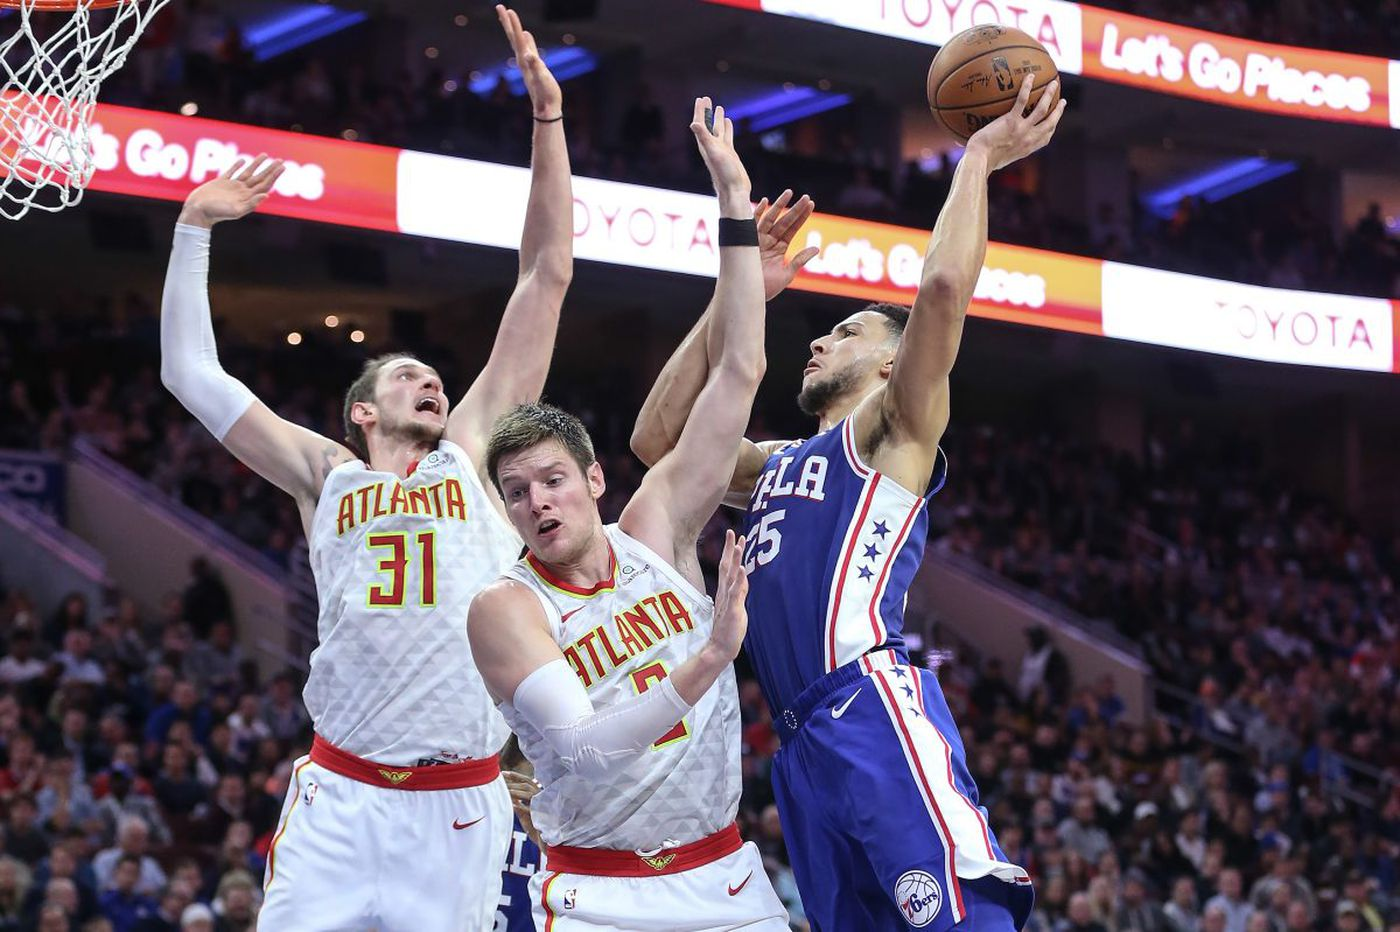 Sixers' Ben Simmons slowly learning to protect the ball when he drives